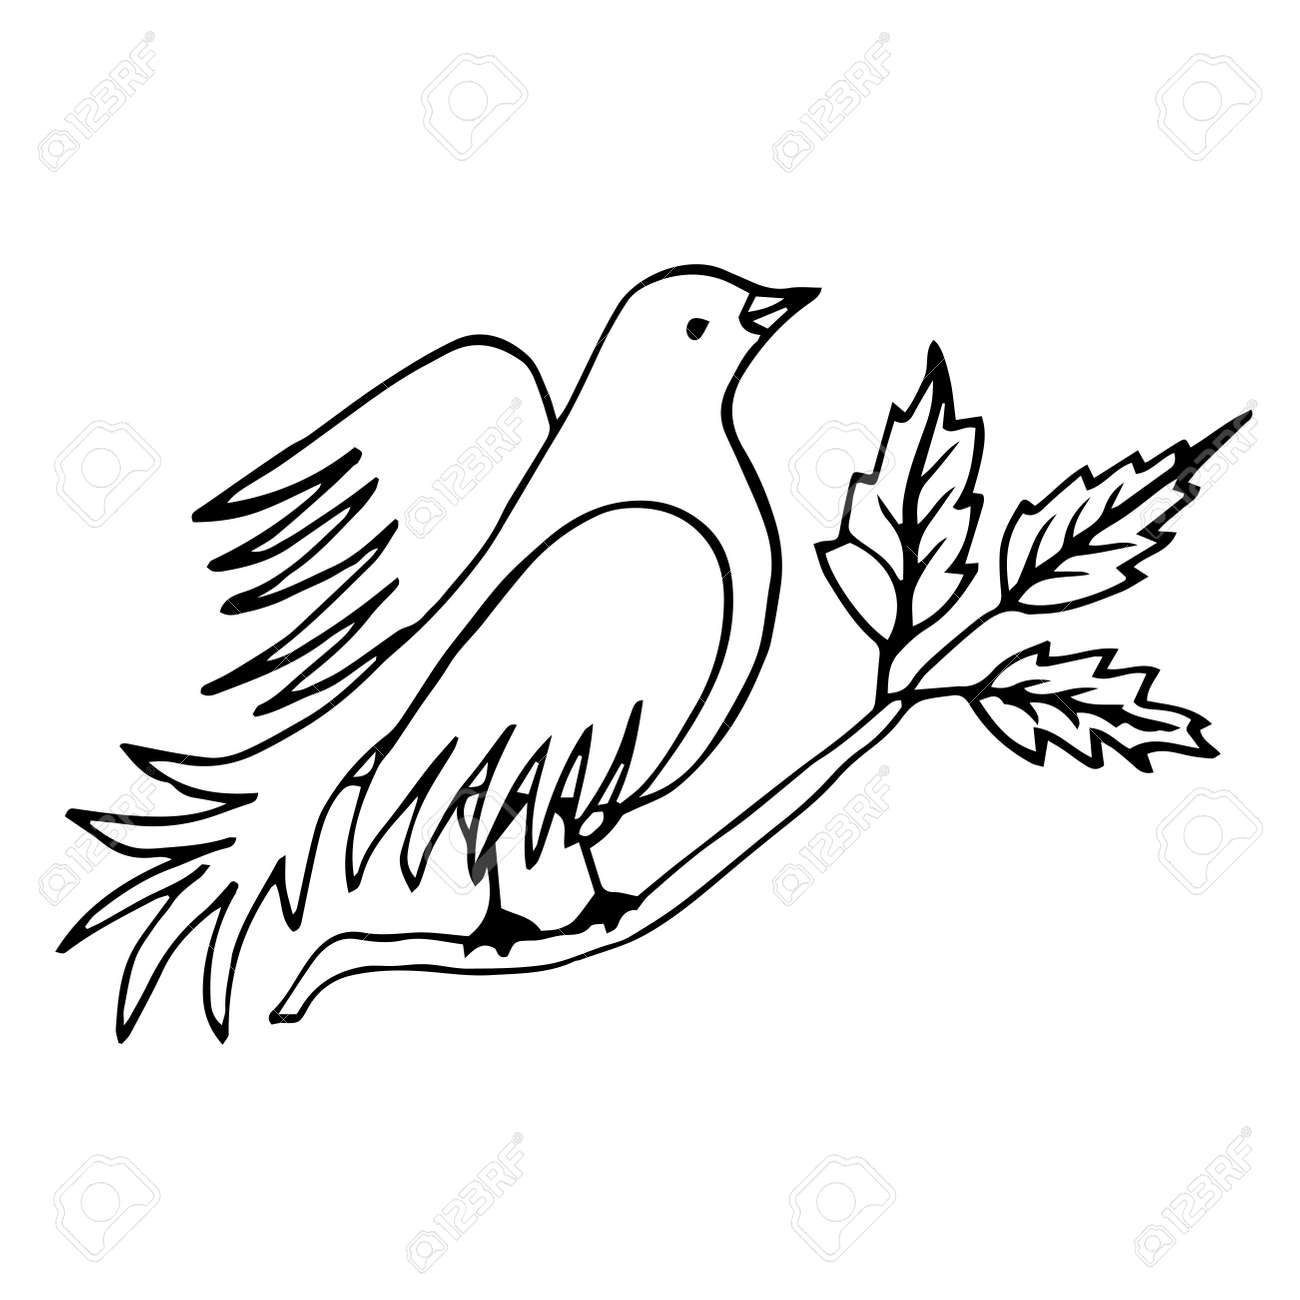 Vector Line Drawing Bird Sitting At Tree Branch With Leaves Royalty Free Cliparts Vectors And Stock Illustration Image 135964855